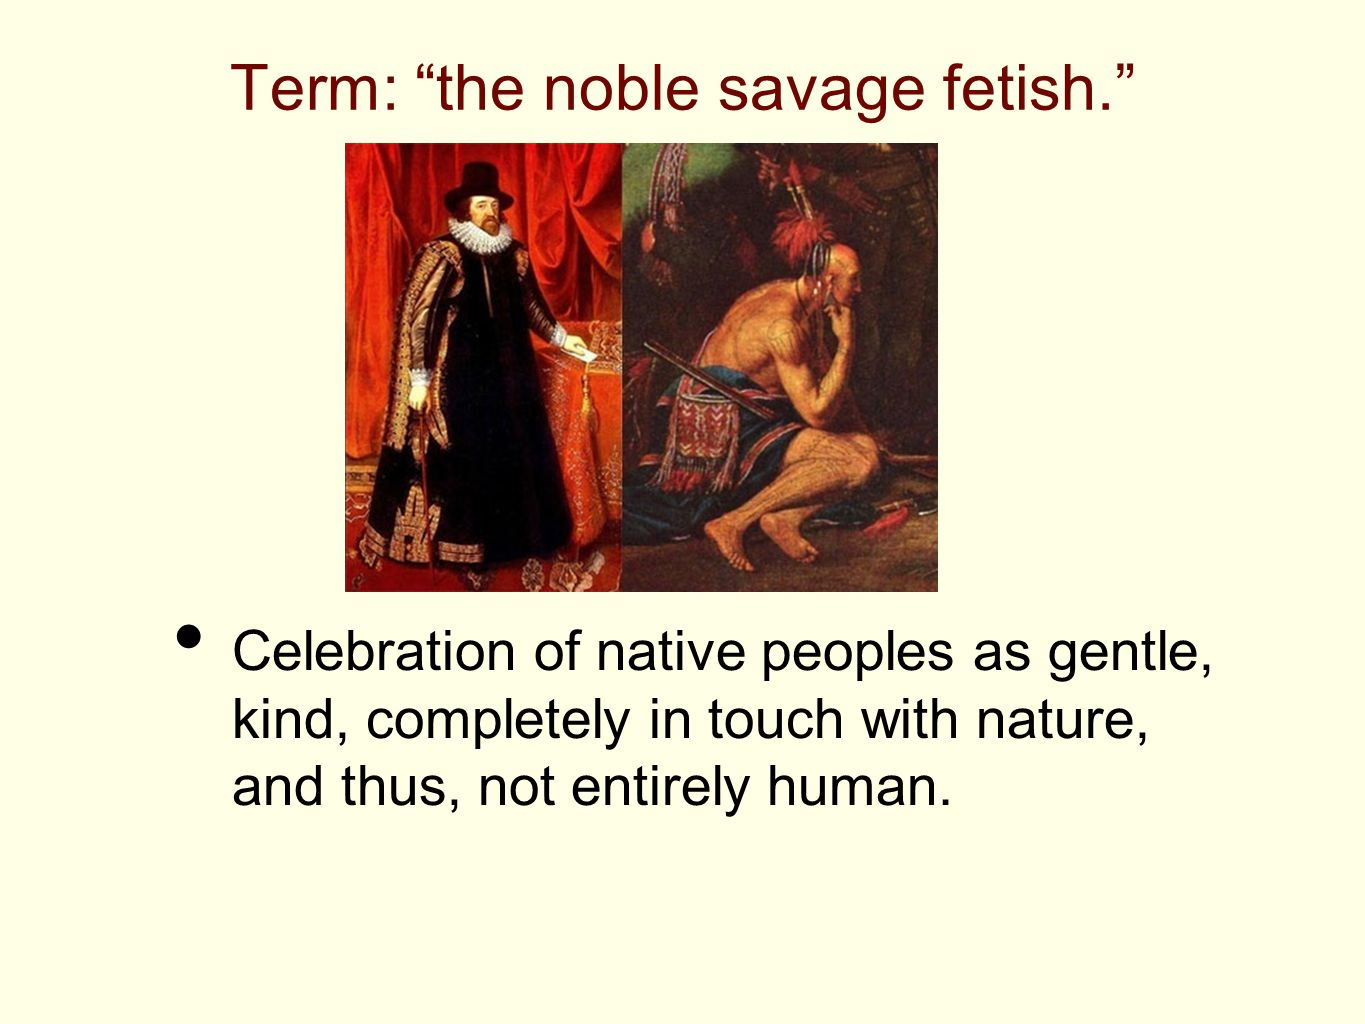 """Term: """"the noble savage fetish."""" Celebration of native peoples as gentle, kind, completely in touch with nature, and thus, not entirely human."""